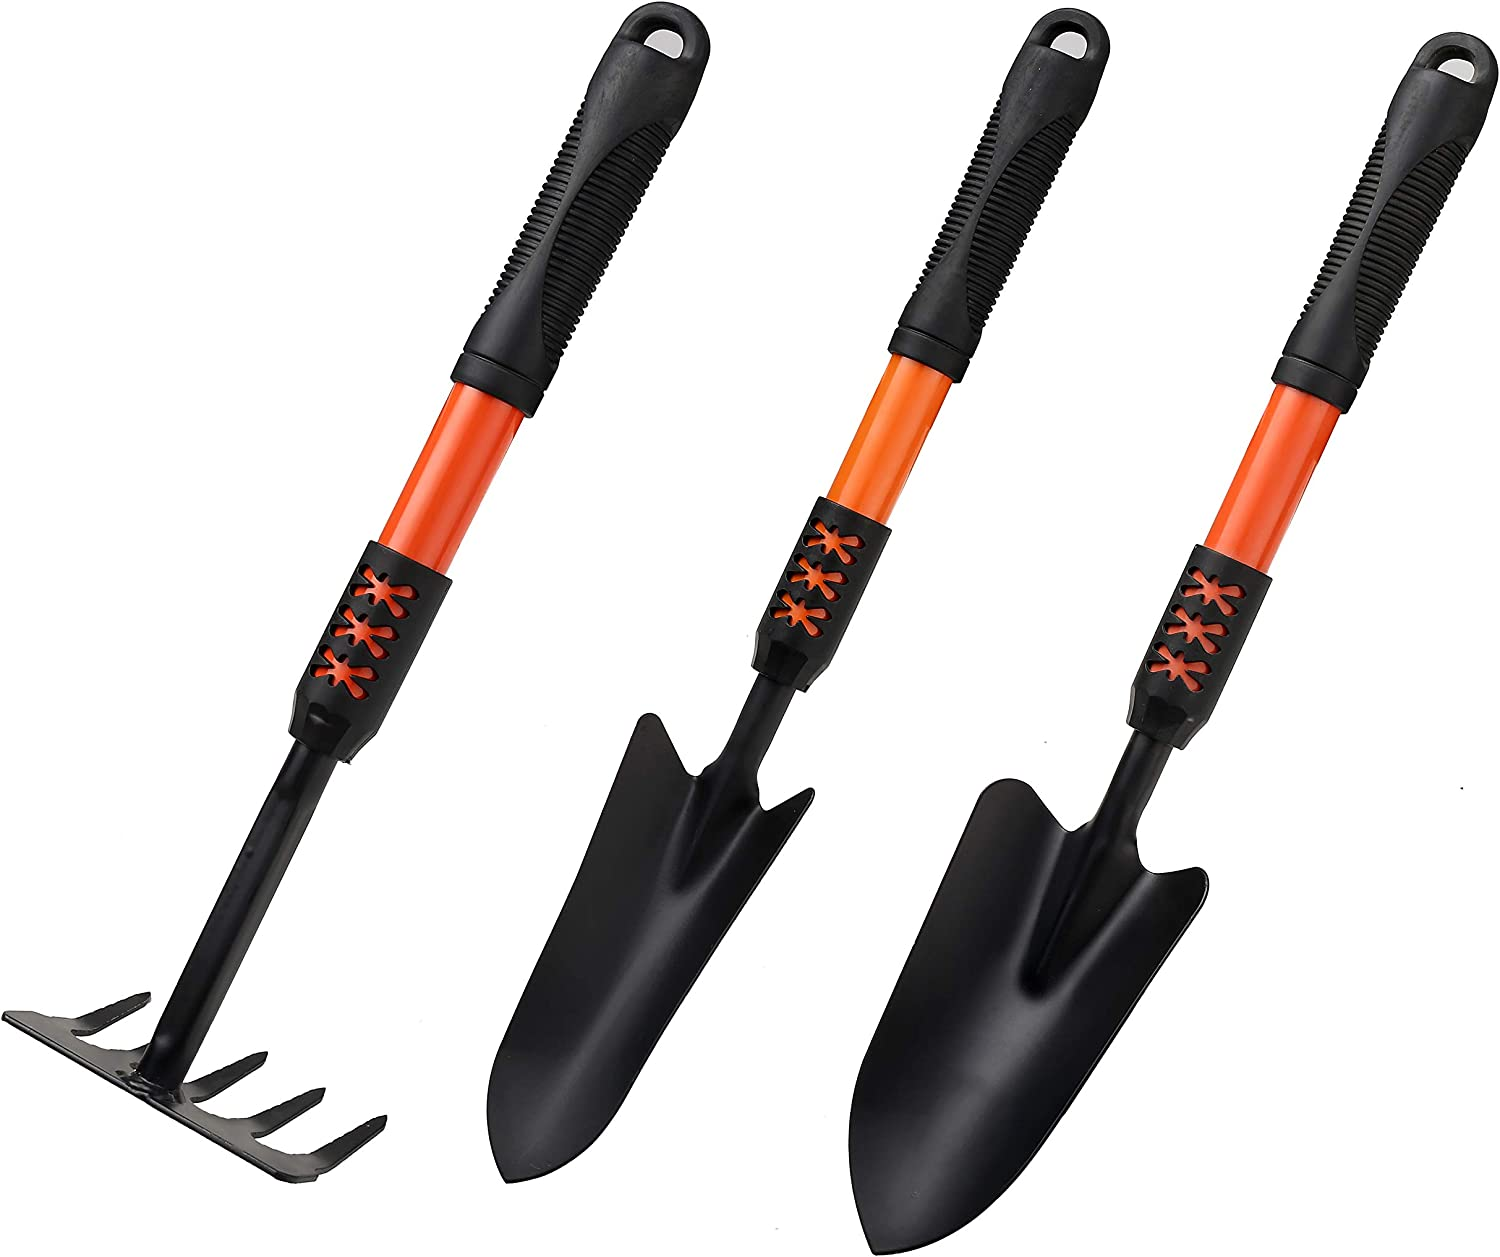 Lanteng 11 Blue Rattan Garden Tool Set Insecticide, 3-Piece Stainless Steel Heavy, b